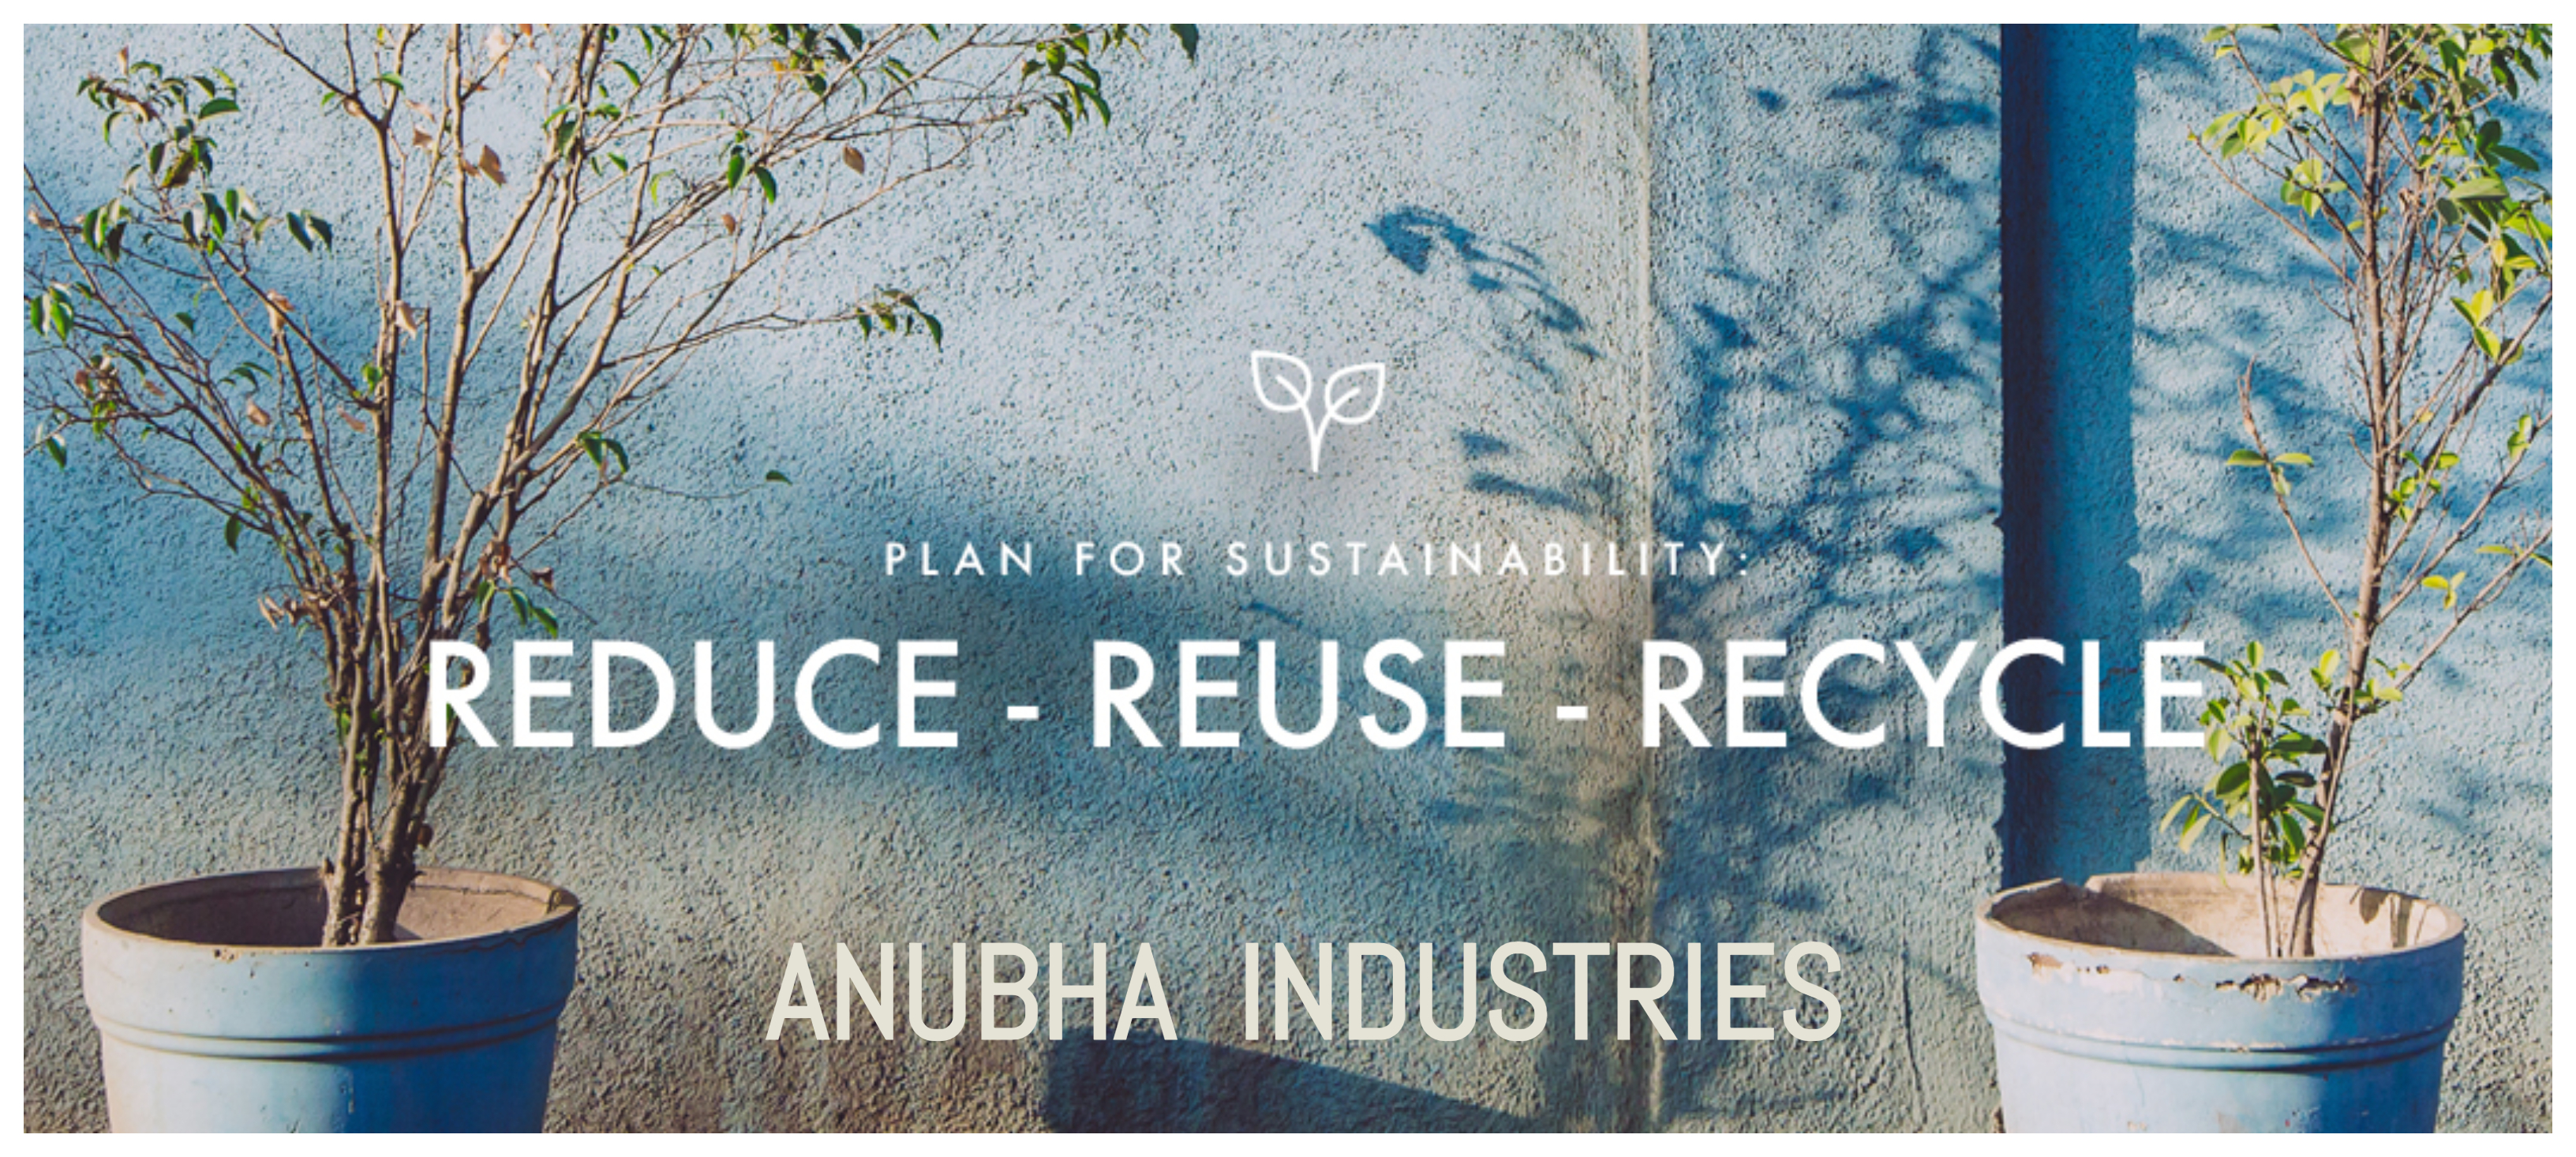 Anubha : Sustainability Efforts By The Exhibitors Of Denimsandjeans: Part II